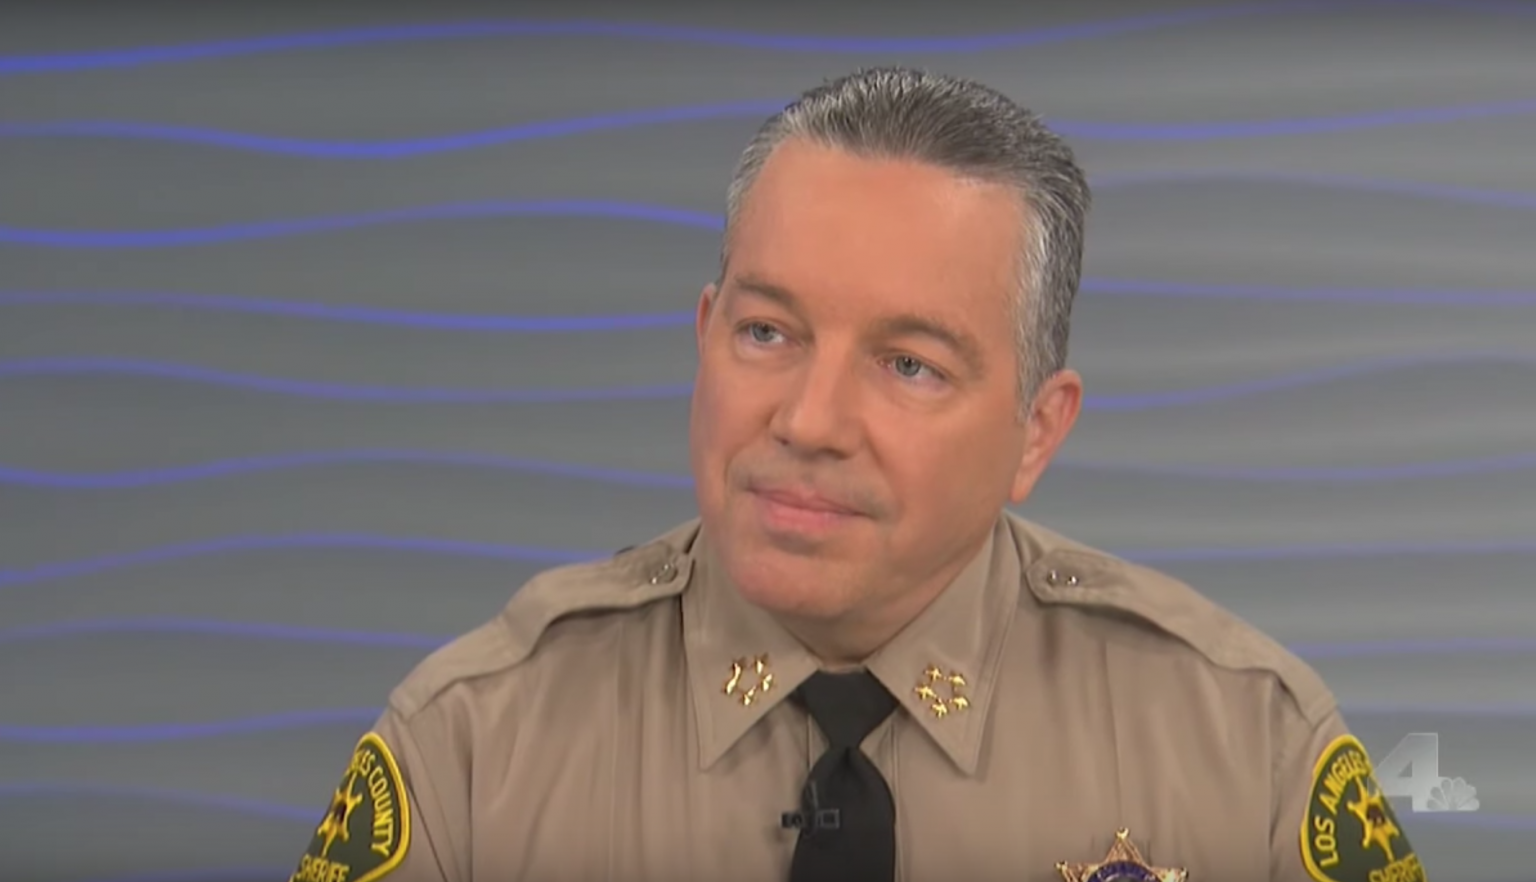 Los Angeles Sheriff shows he's more concerned with protecting illegal immigrants than citizens